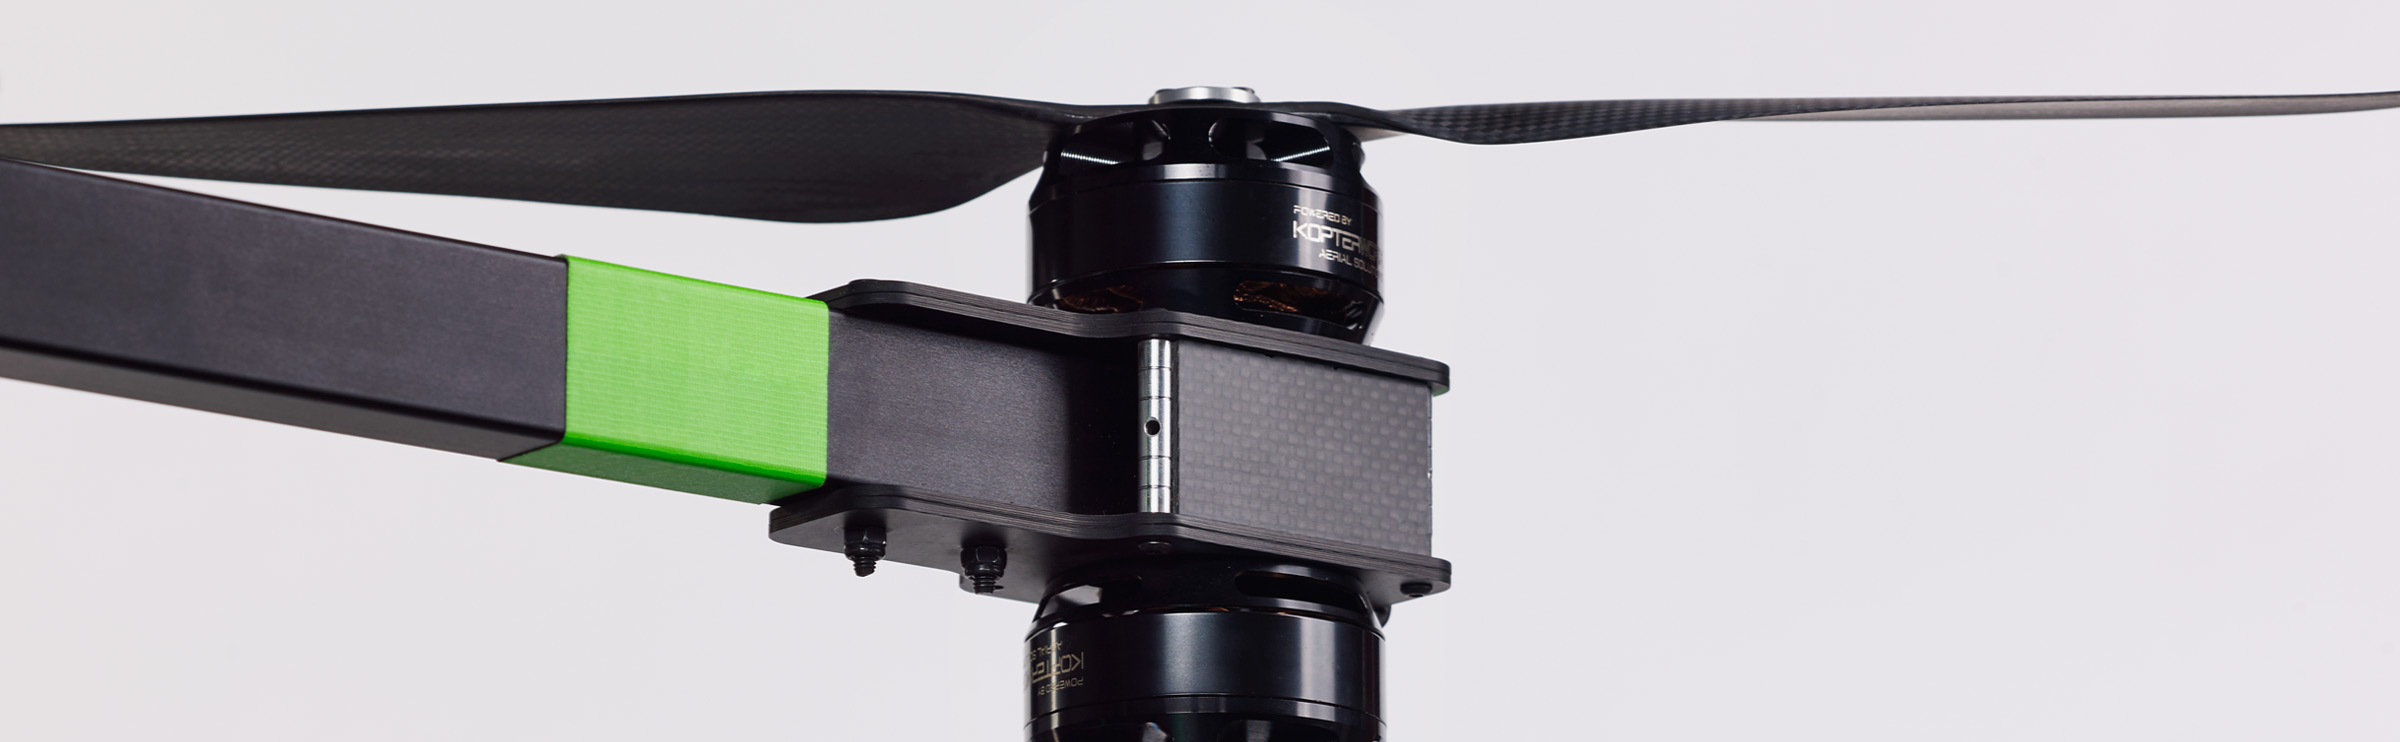 kopterwork aerial filming photography technik close up and still free